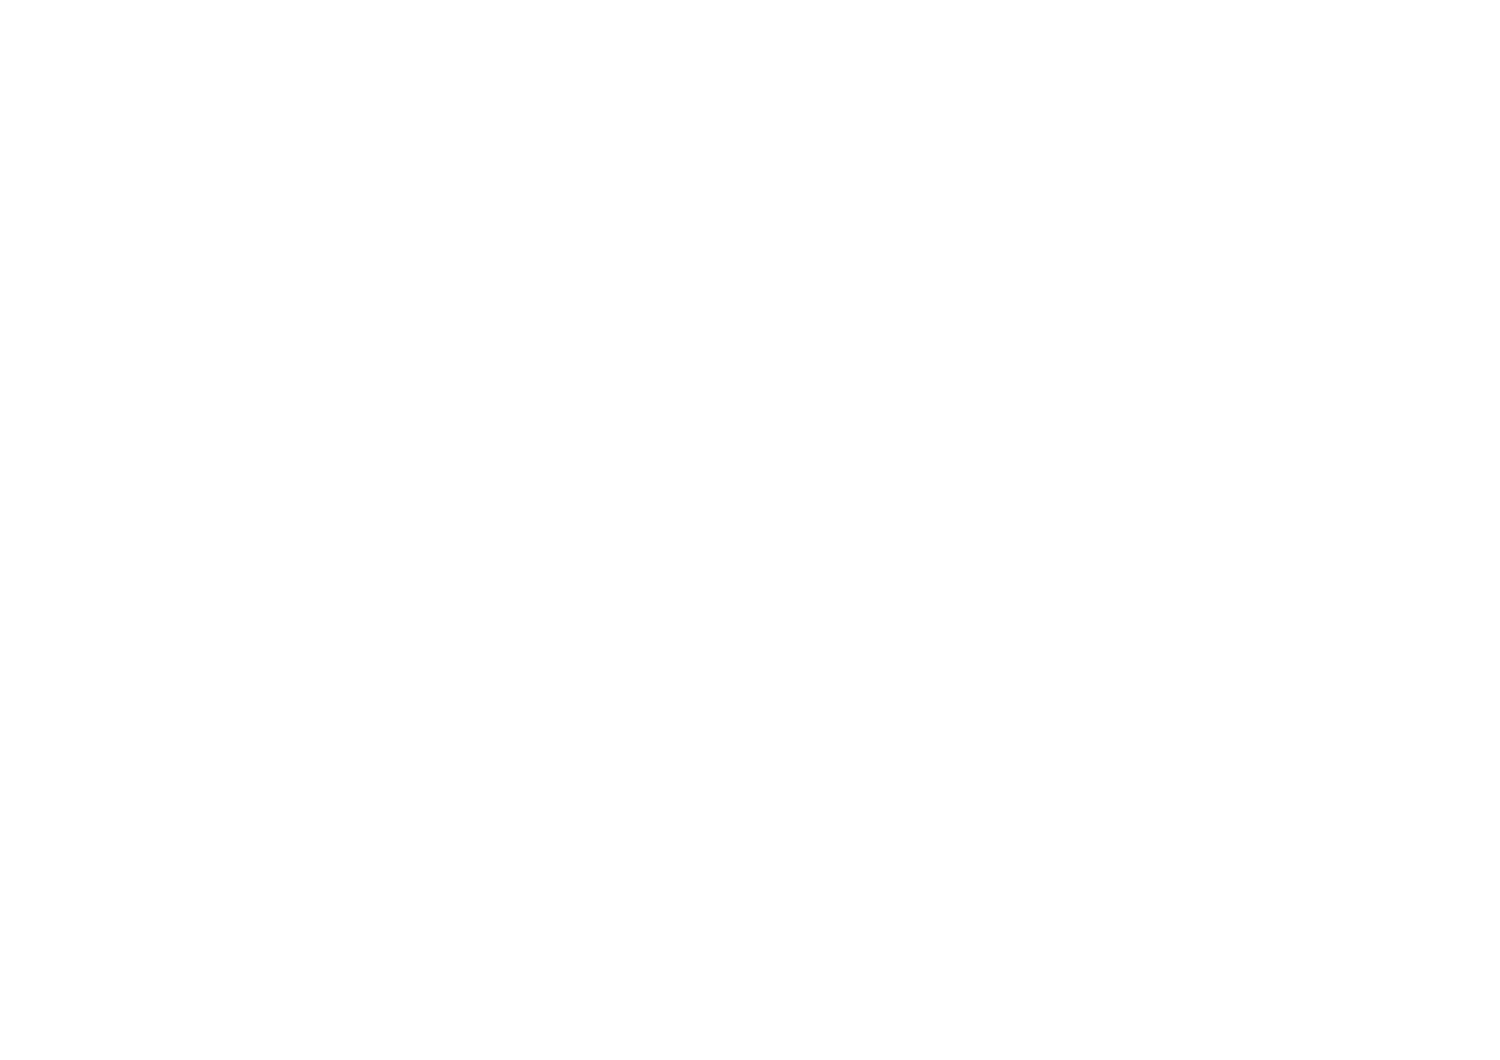 BeachSideVillageResort